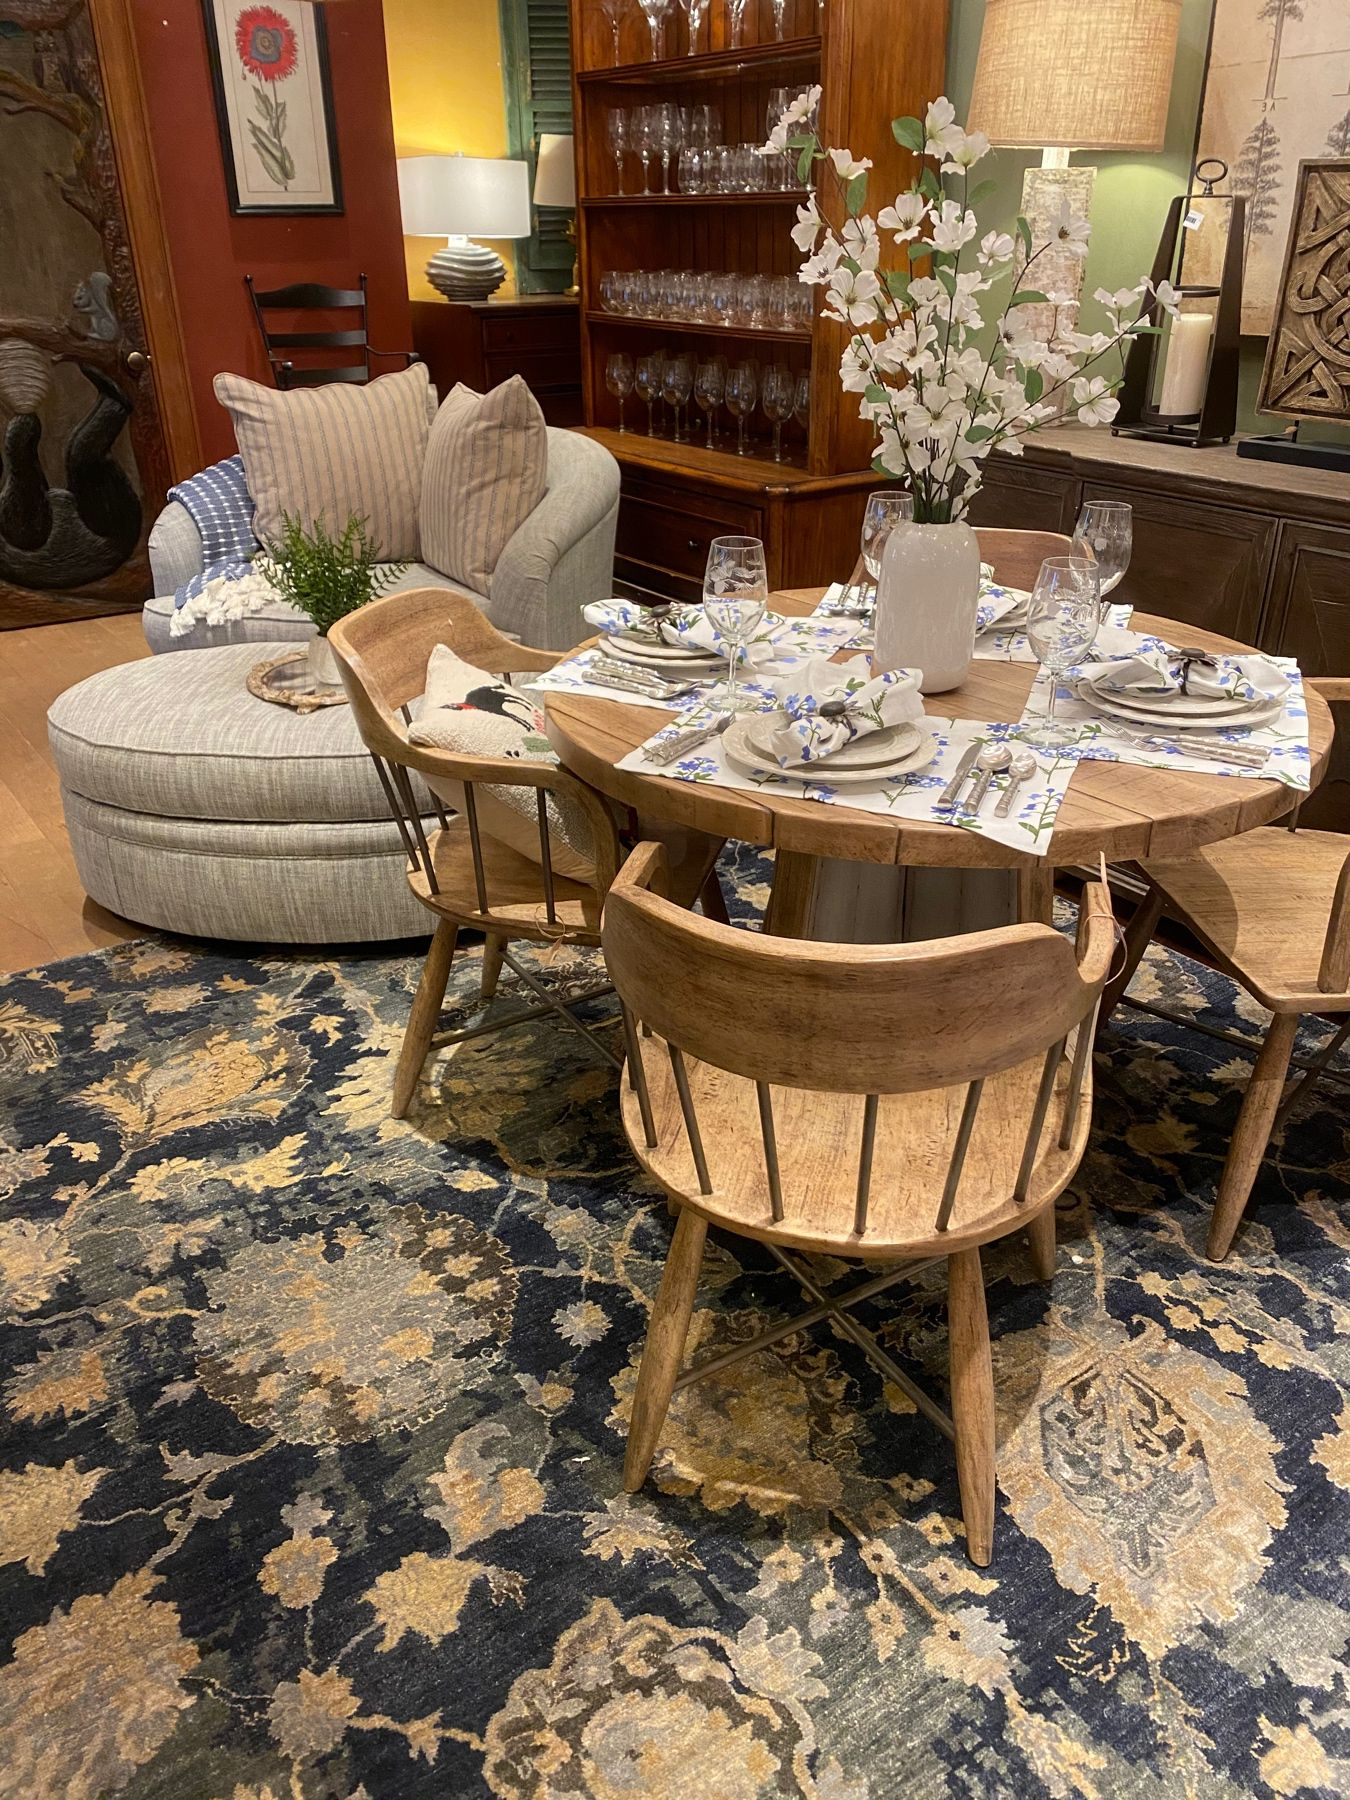 New Tour!! Check out our stories for the newest showroom tour, and don't forget... EVERYTHING is now 40% off! . . .  #style #shopping #love #shop #discount #boutique #shoplocal #design #beautiful #musthave #winter #shopsmall #jewelry #vintage #dreamhome #oldhomes #newbuild #renovation #antique #character #lakelife #hcnh #designfurnish #design #furnish